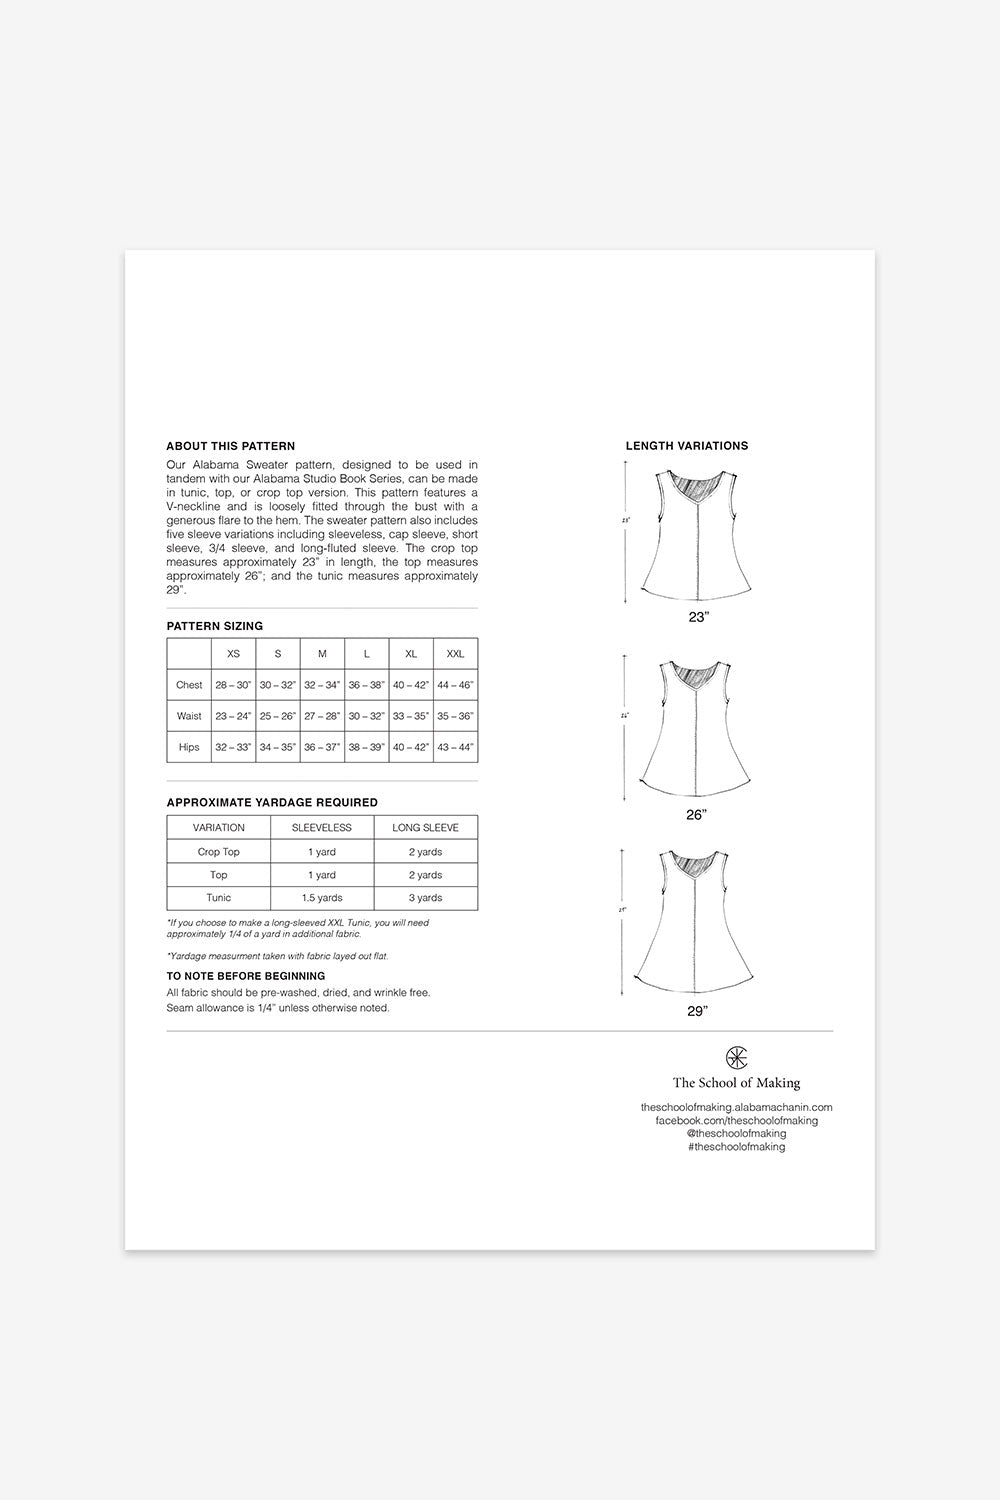 The School of Making Alabama Sweater Pattern Maker Supplies Sewing Pattern with Pattern Sizing and Adjustments